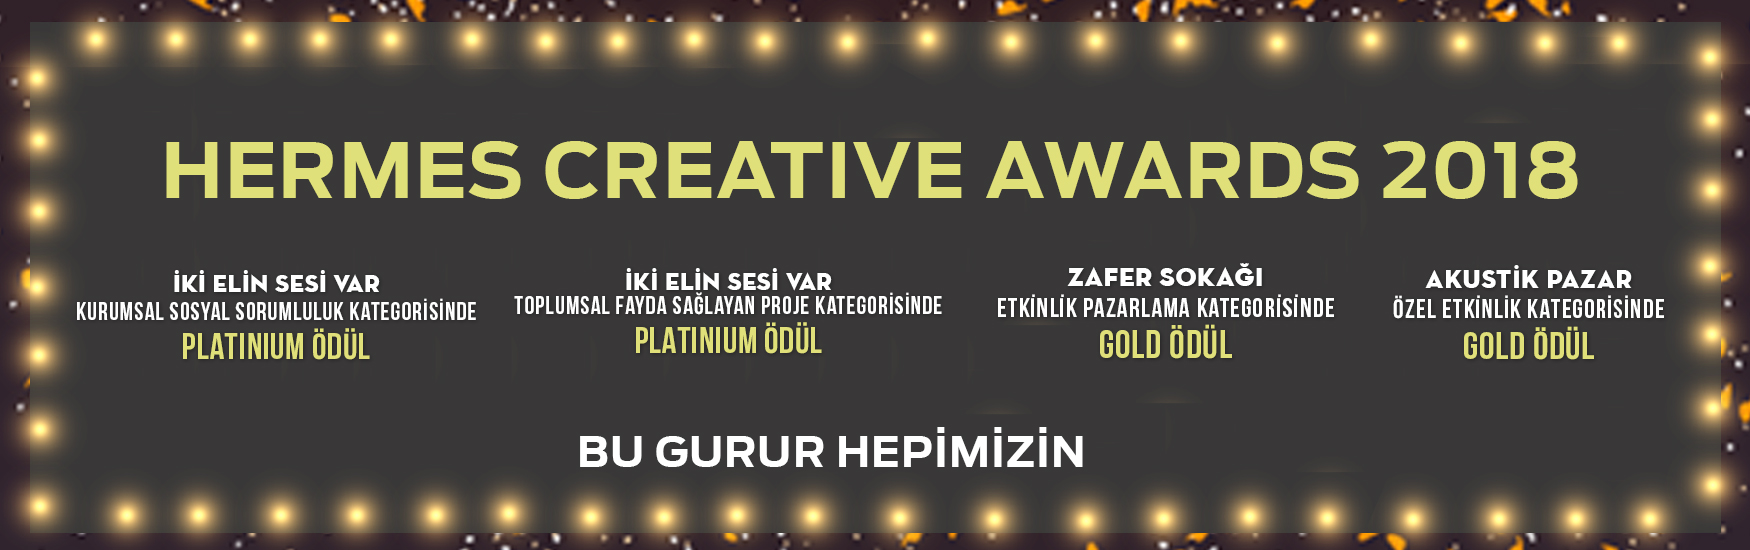 Hermes Creative Awards 2018